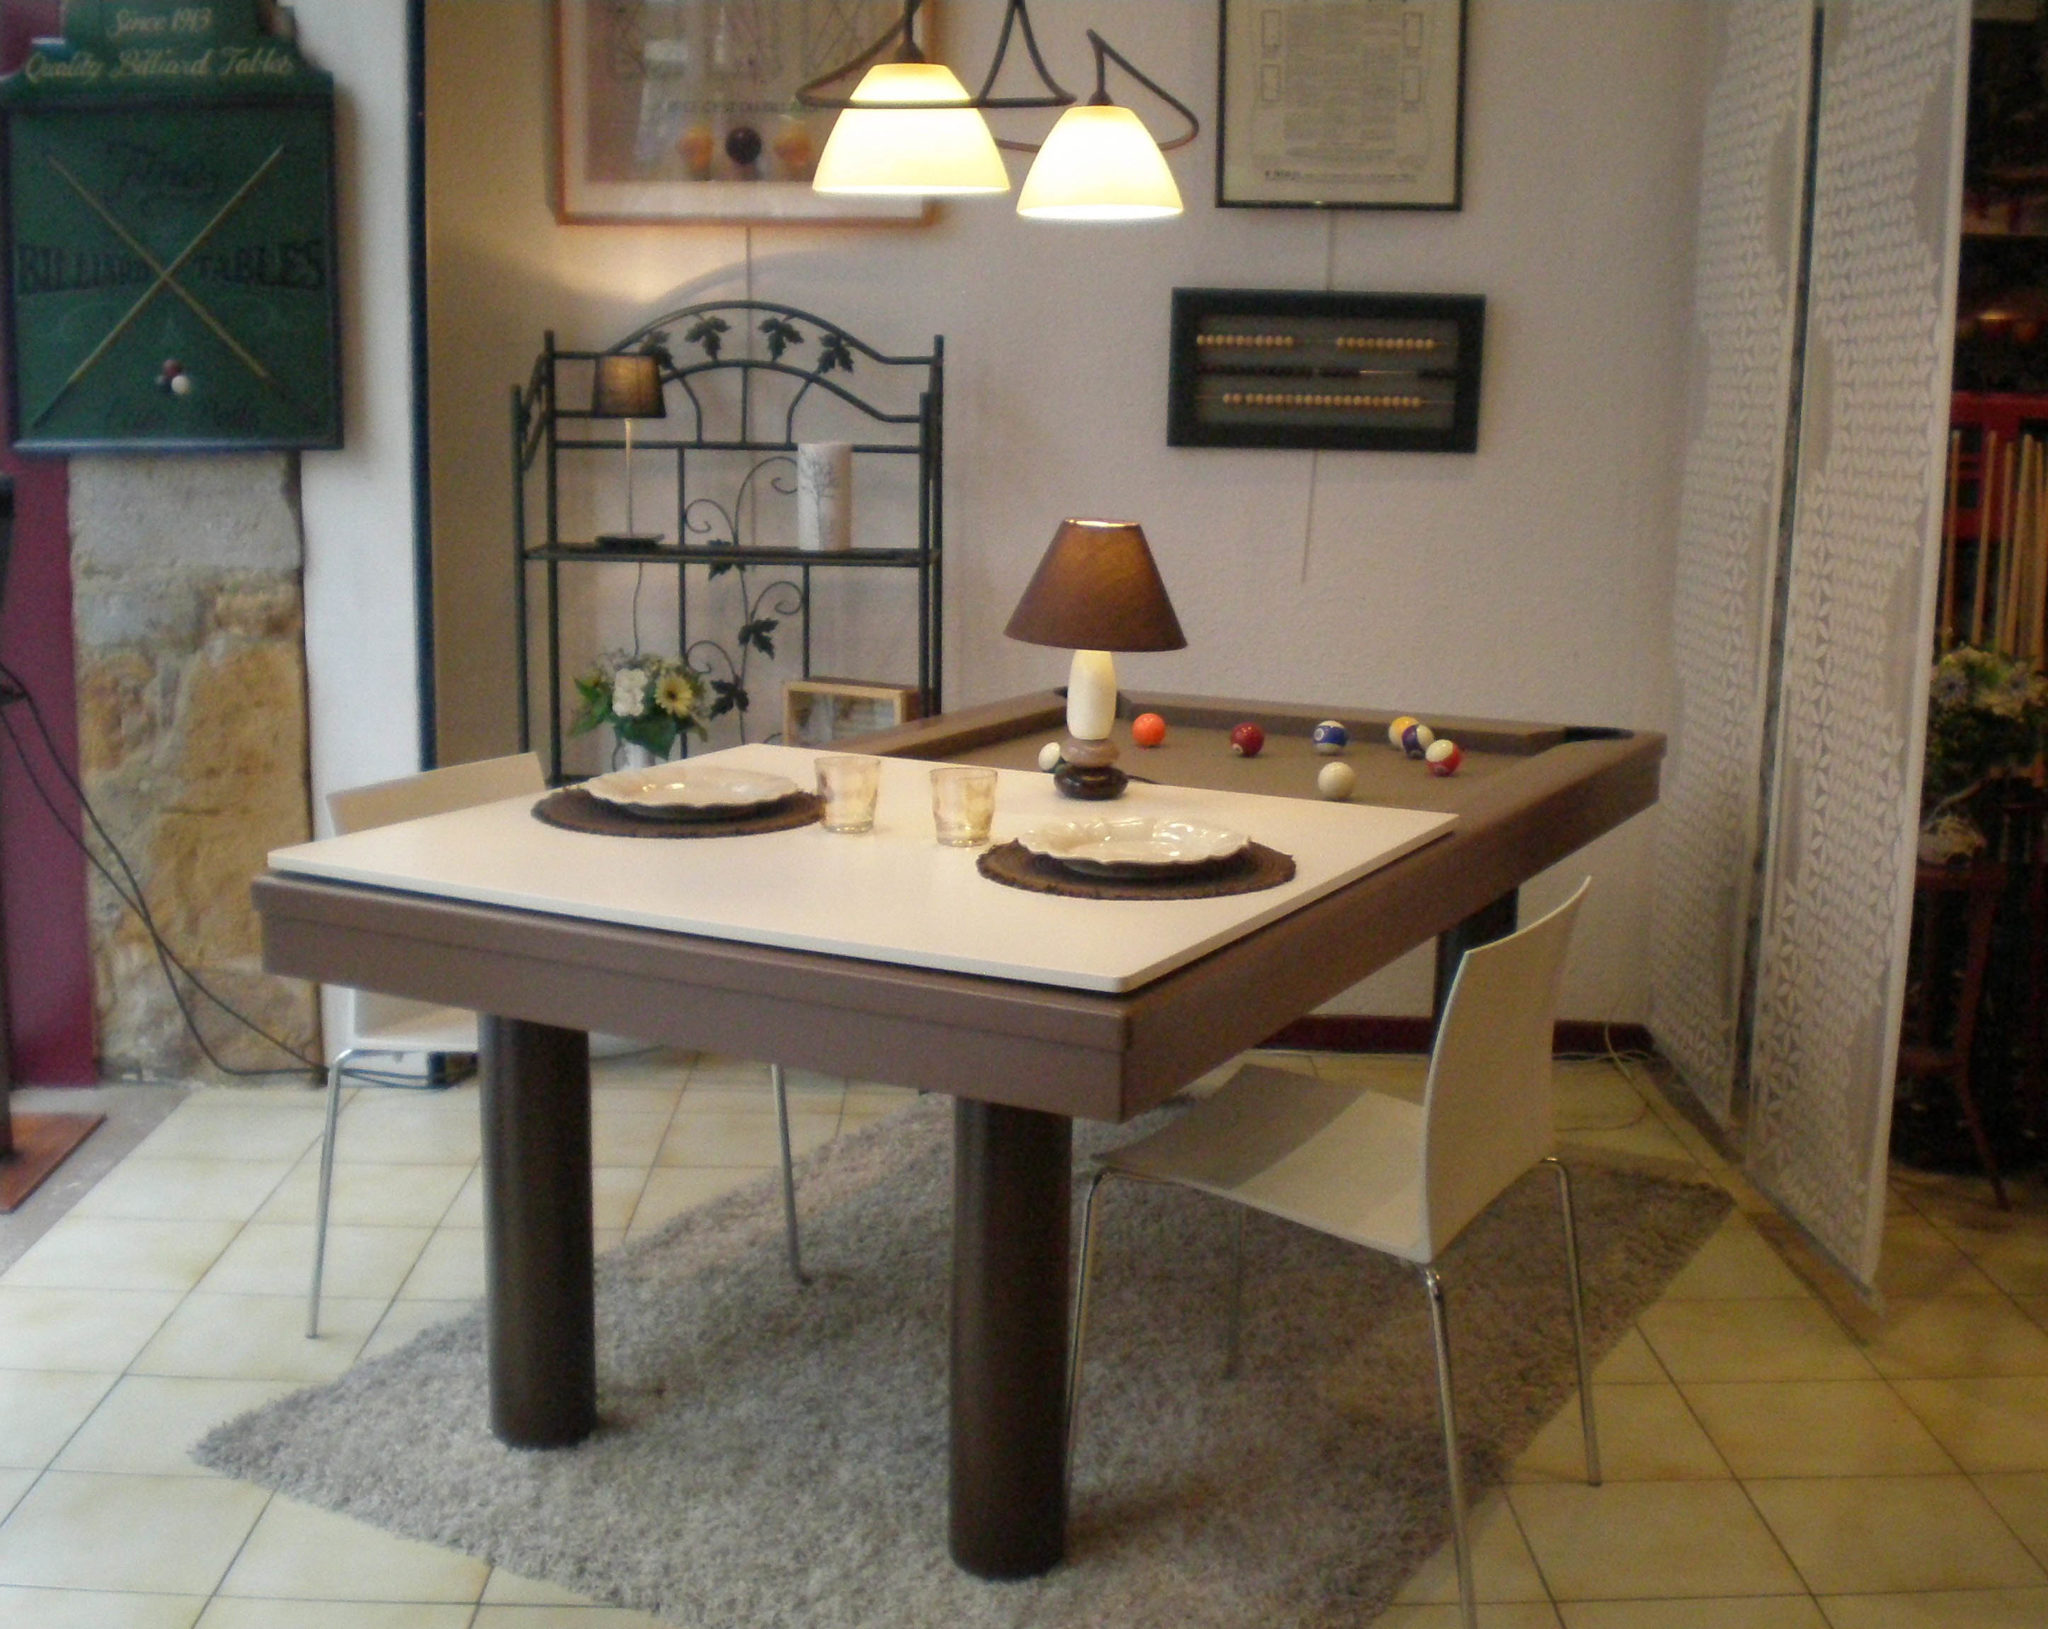 « Le Seventies » table 5 240 €